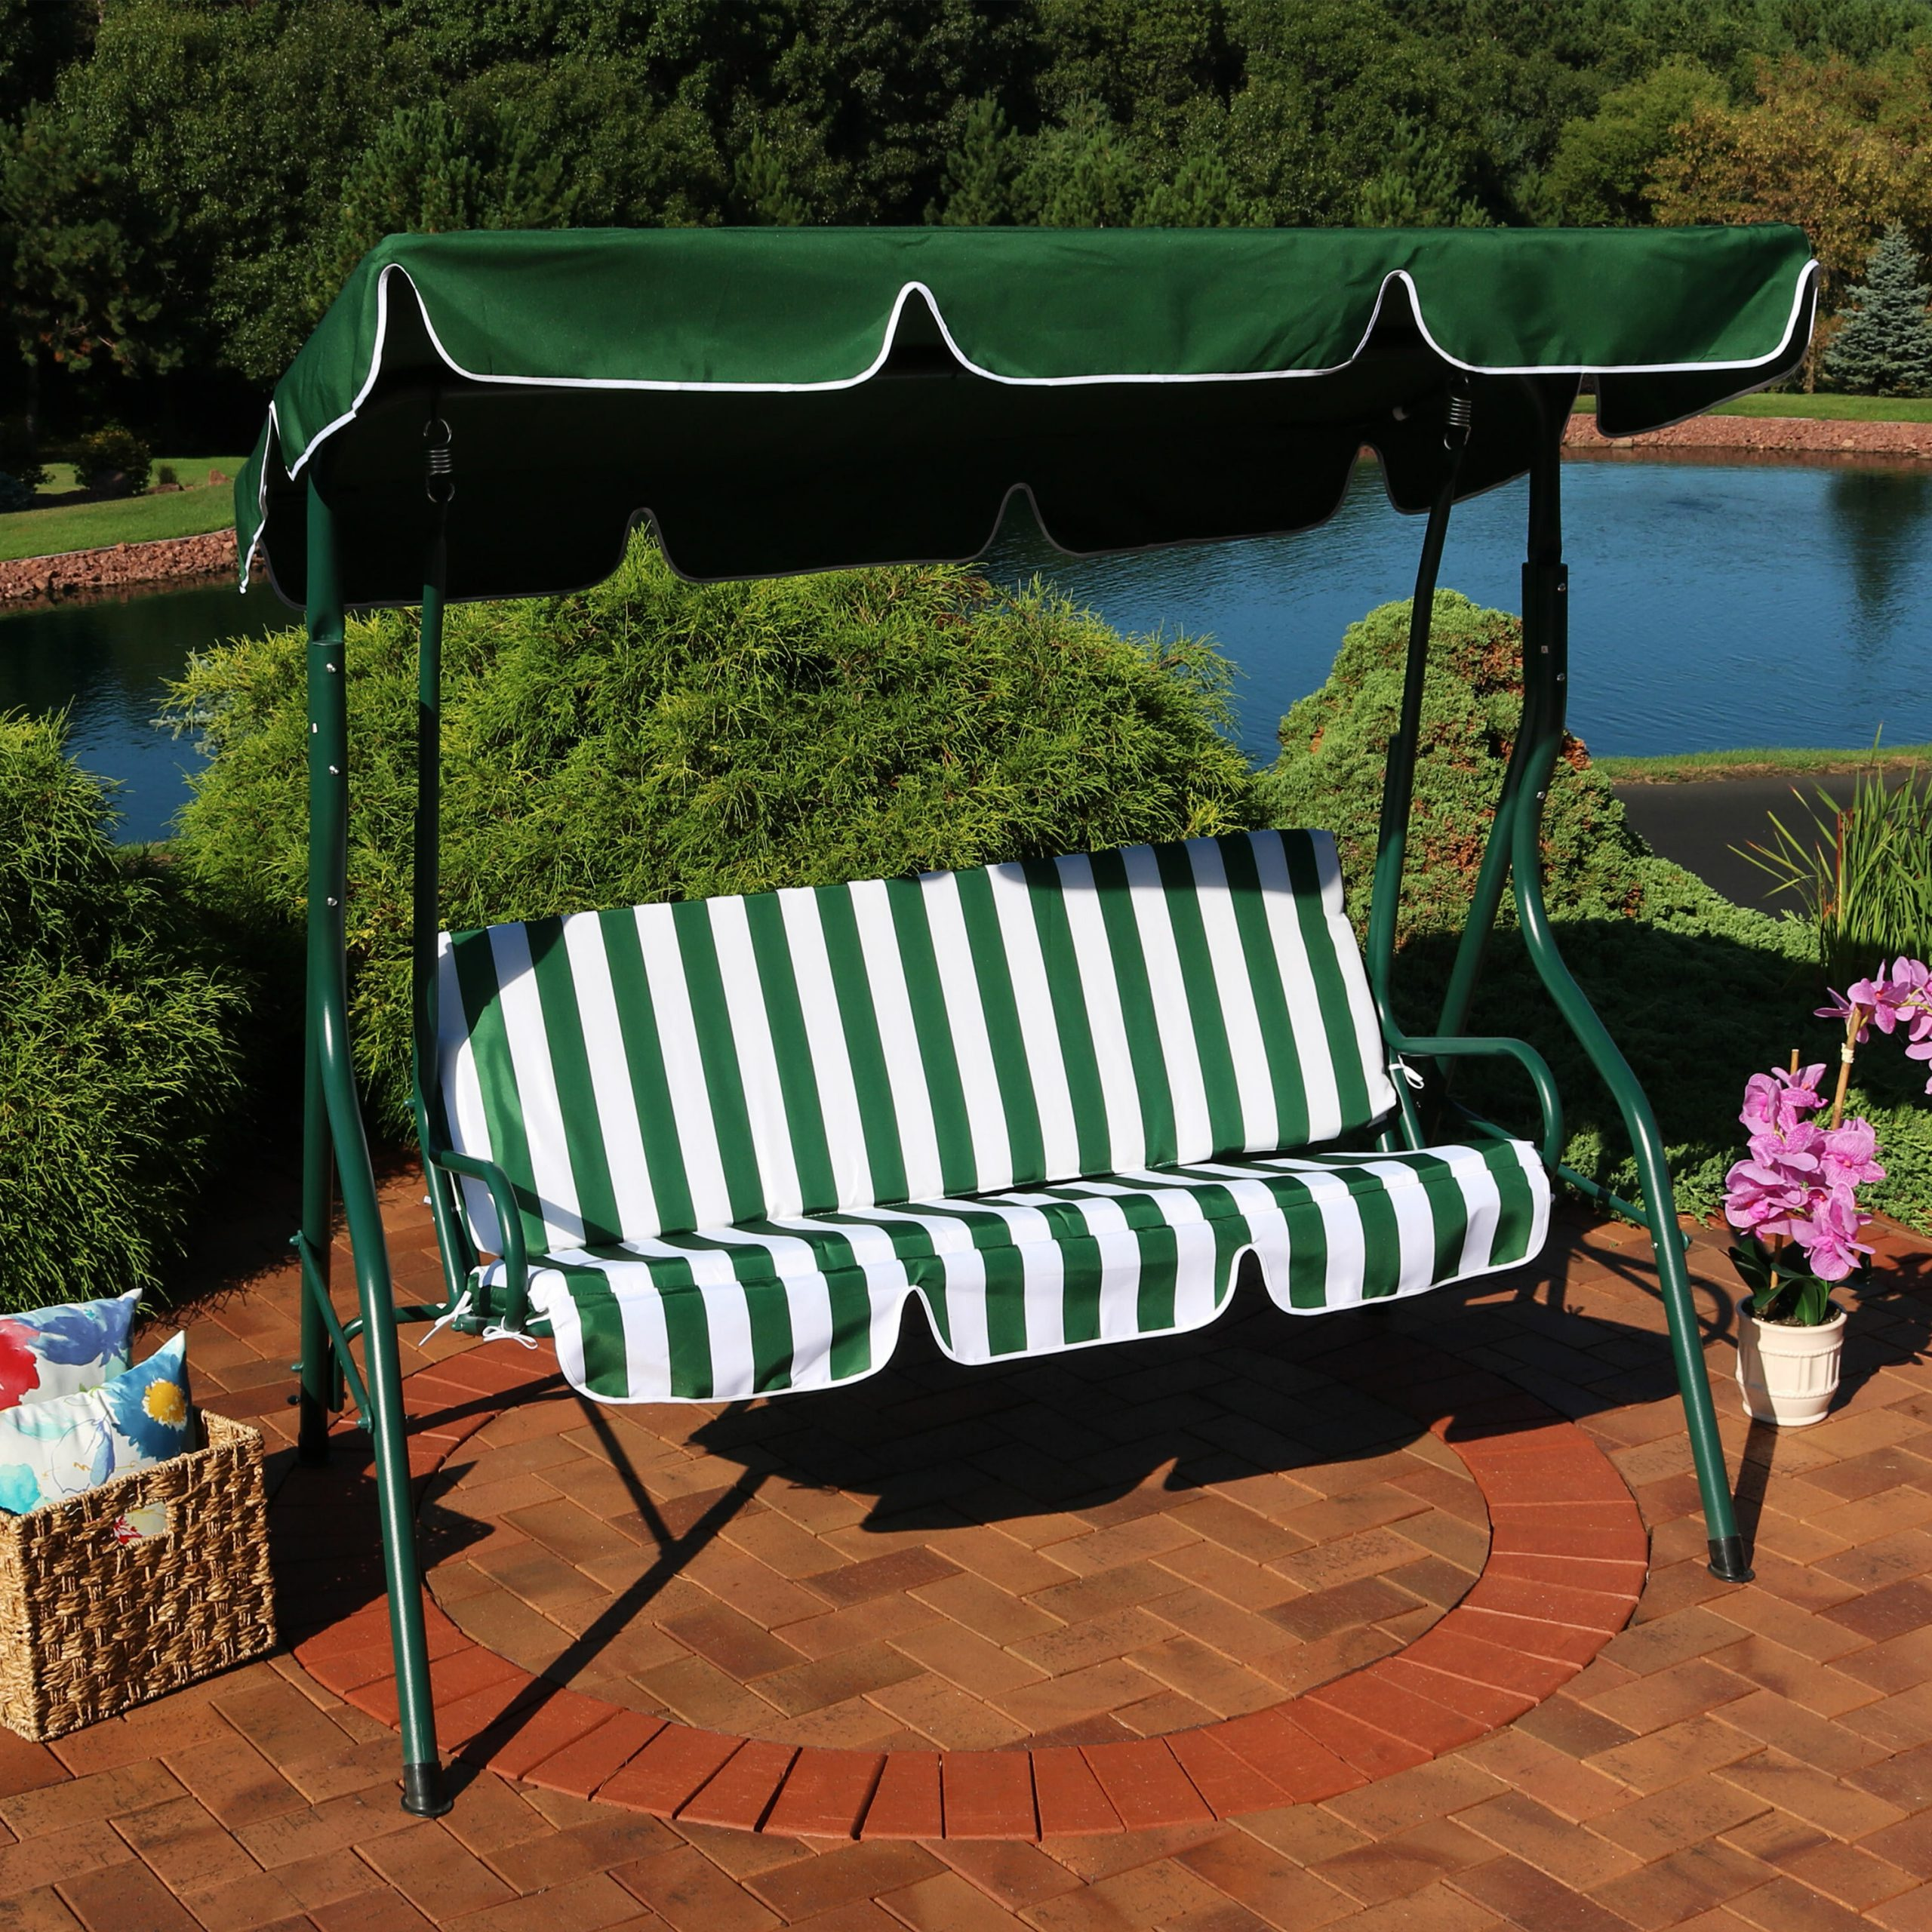 3 Seats Patio Canopy Swing Gliders Hammock Cushioned Steel Frame Within Preferred Sunseri 3 Person Striped Seat Outdoor Canopy Patio Porch Swing With Stand (View 16 of 25)